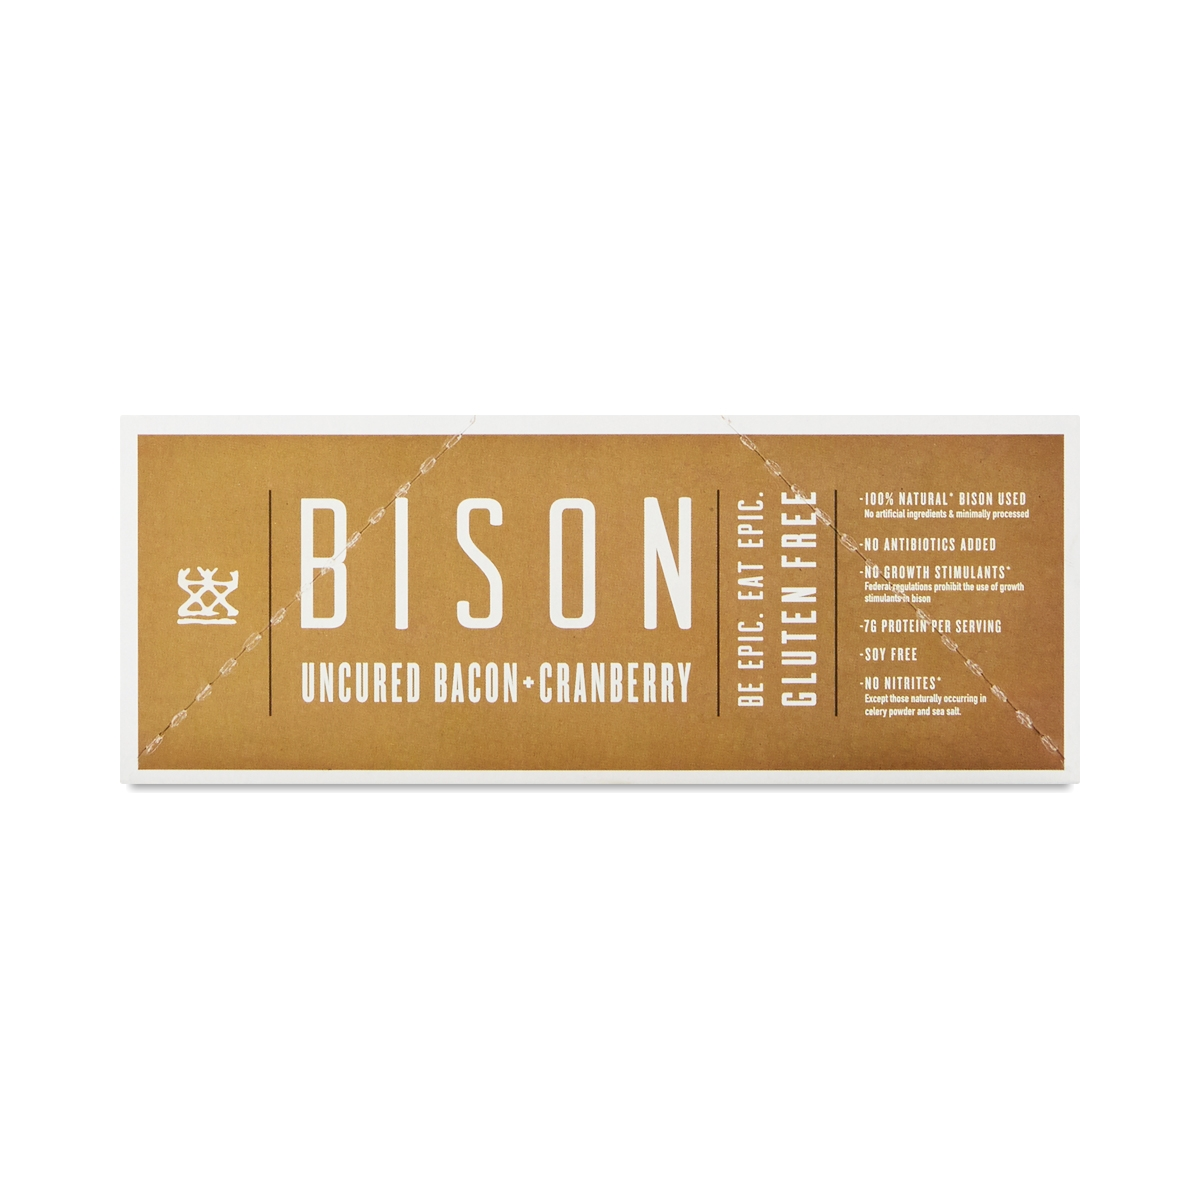 Bison Bacon Cranberry Bars by EPIC